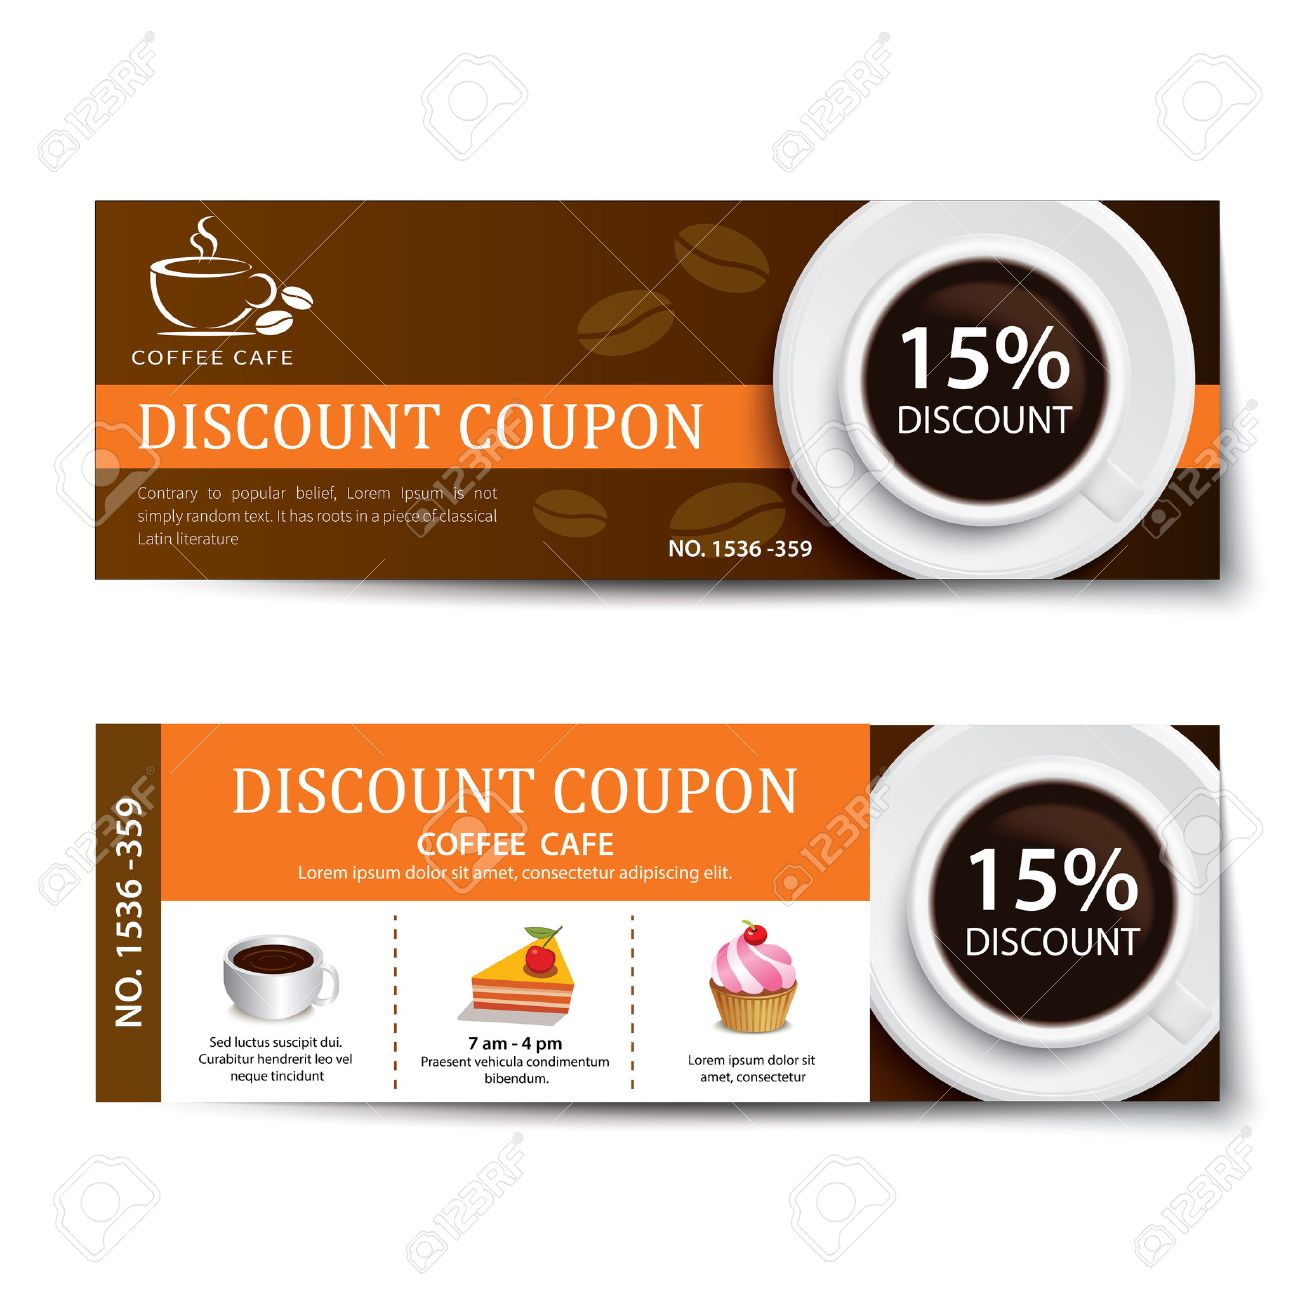 Coffee Coupon Discount Template Design Royalty Free Cliparts ...